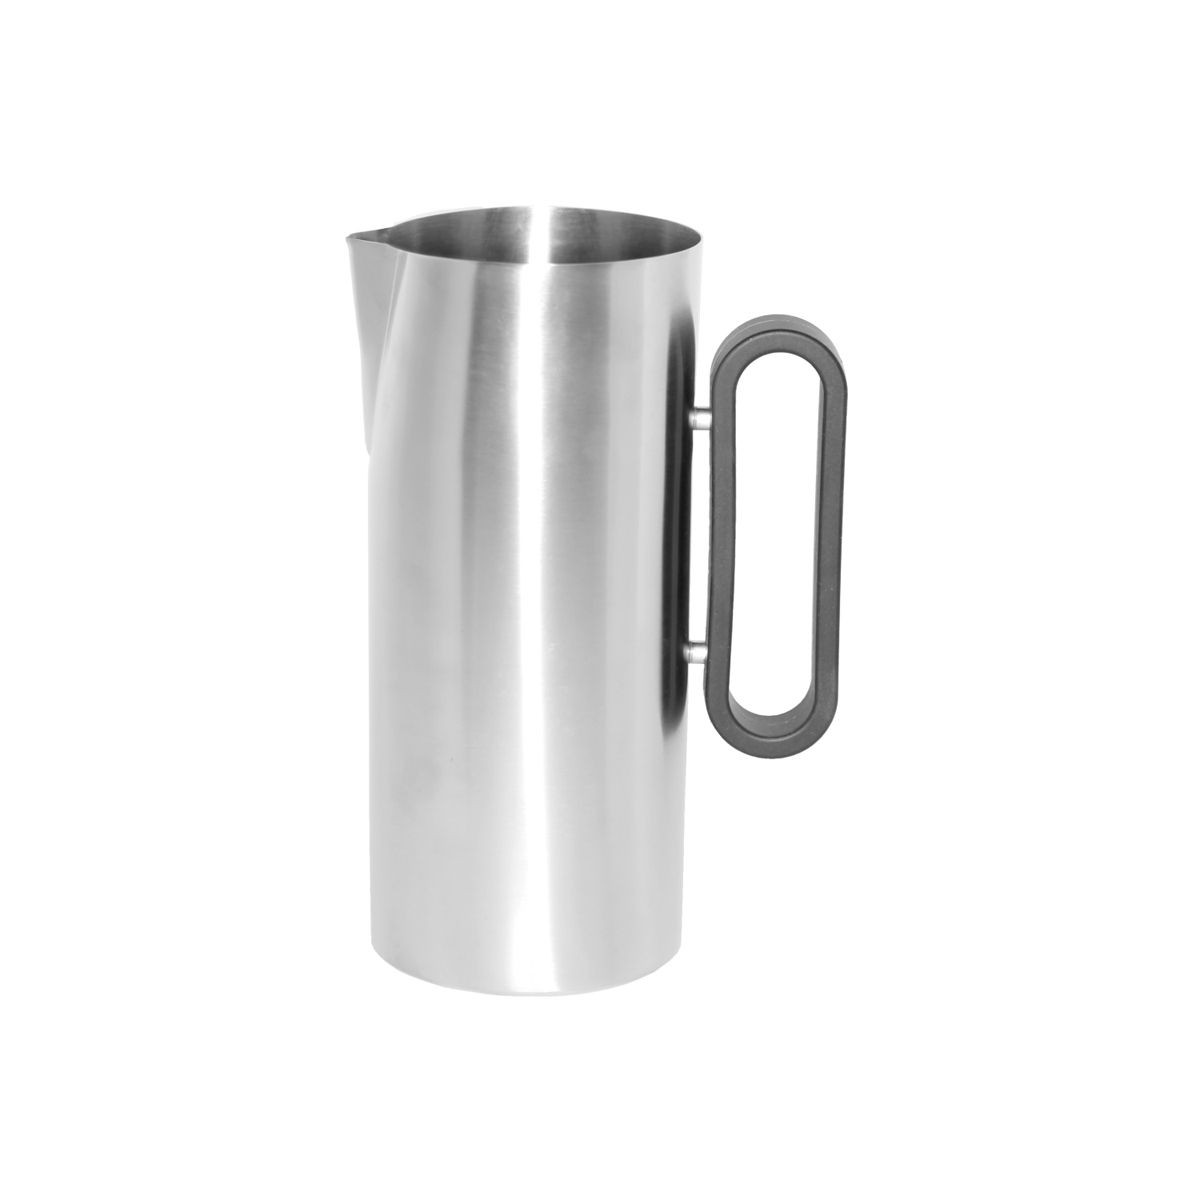 Service Ideas SB-24 SteelForme Water Pitcher with Silicone Handle, 64 oz.